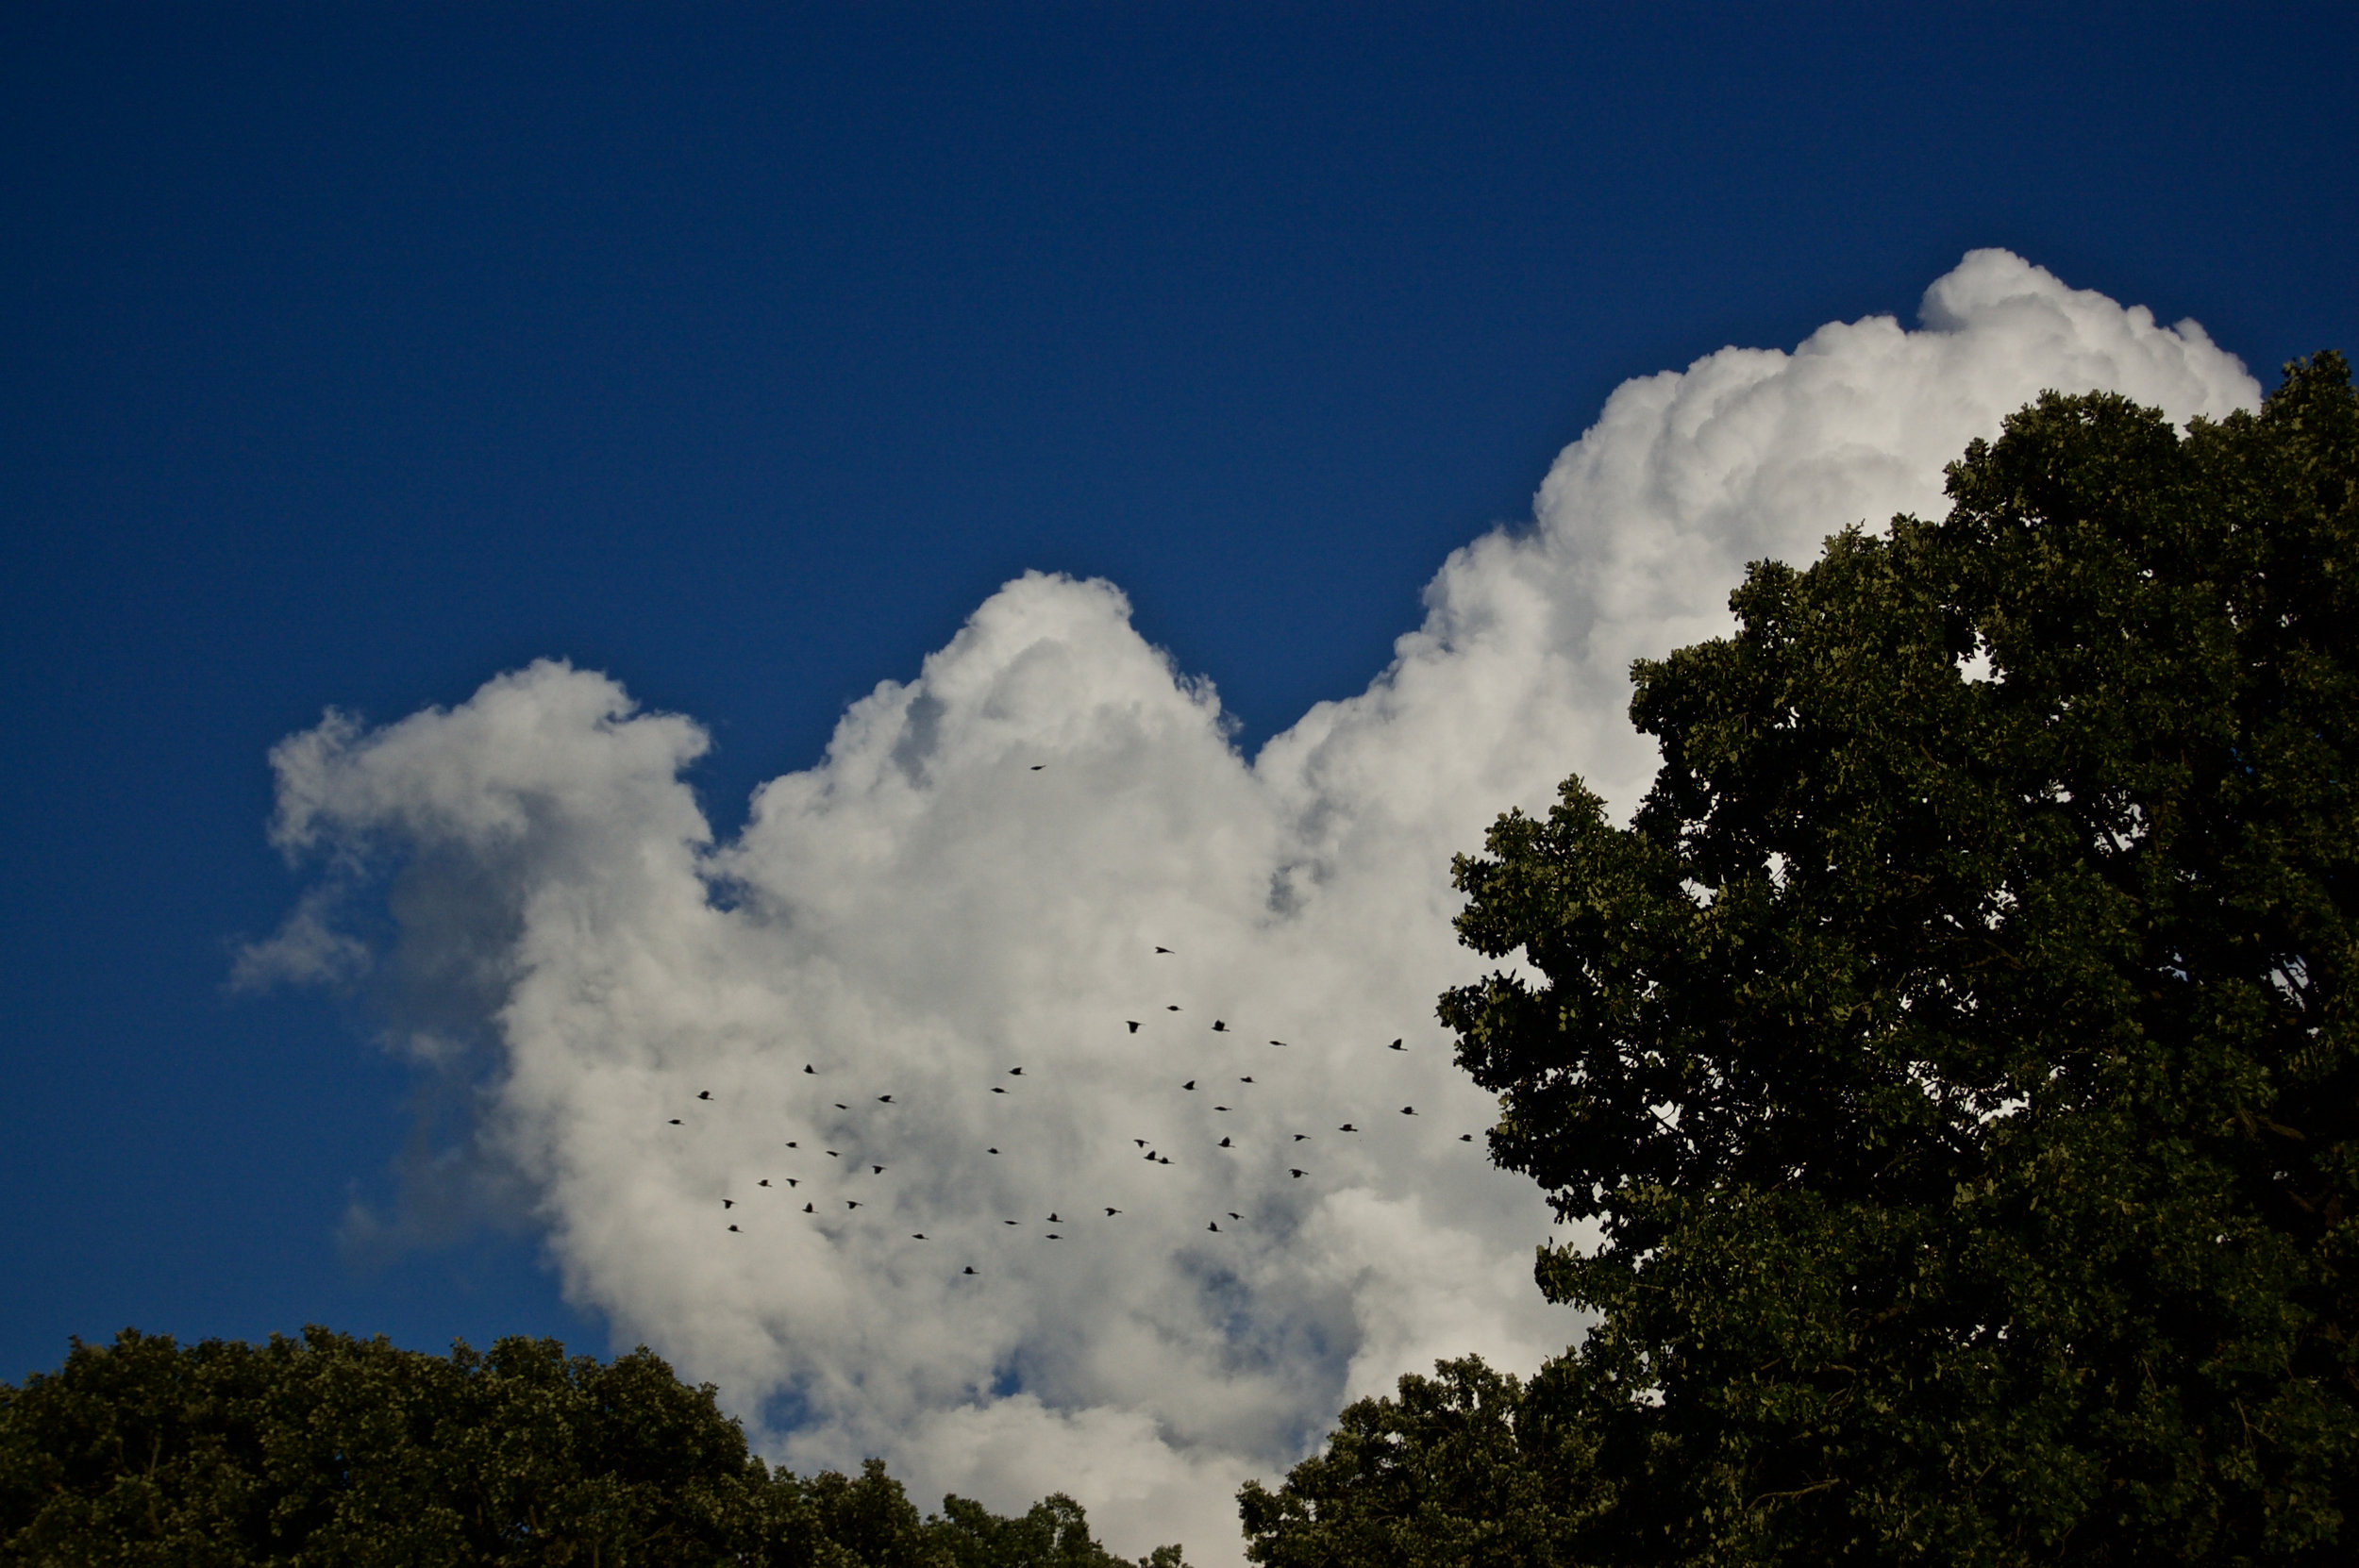 Cloud and Flock. Madison, Wisconsin. August 2008. © William D. Walker